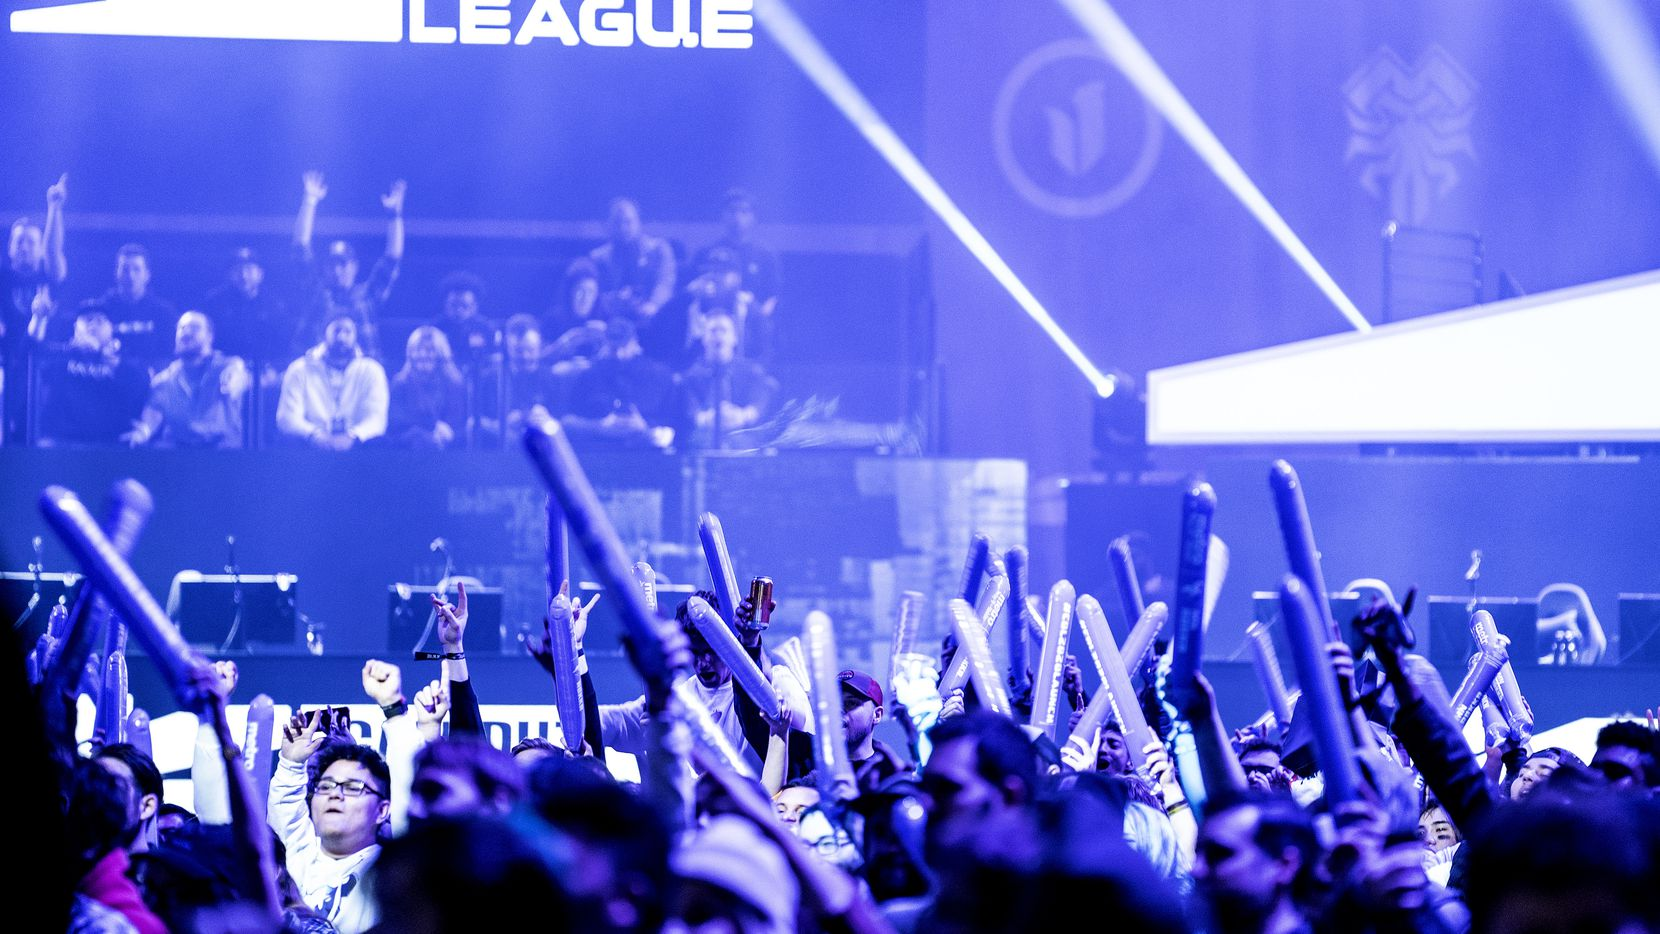 Fans cheer as Dallas Empire competes against Chicago Huntsmen in the Call of Duty League Launch Weekend at the Armory in Minneapolis on Jan. 24, 2020.